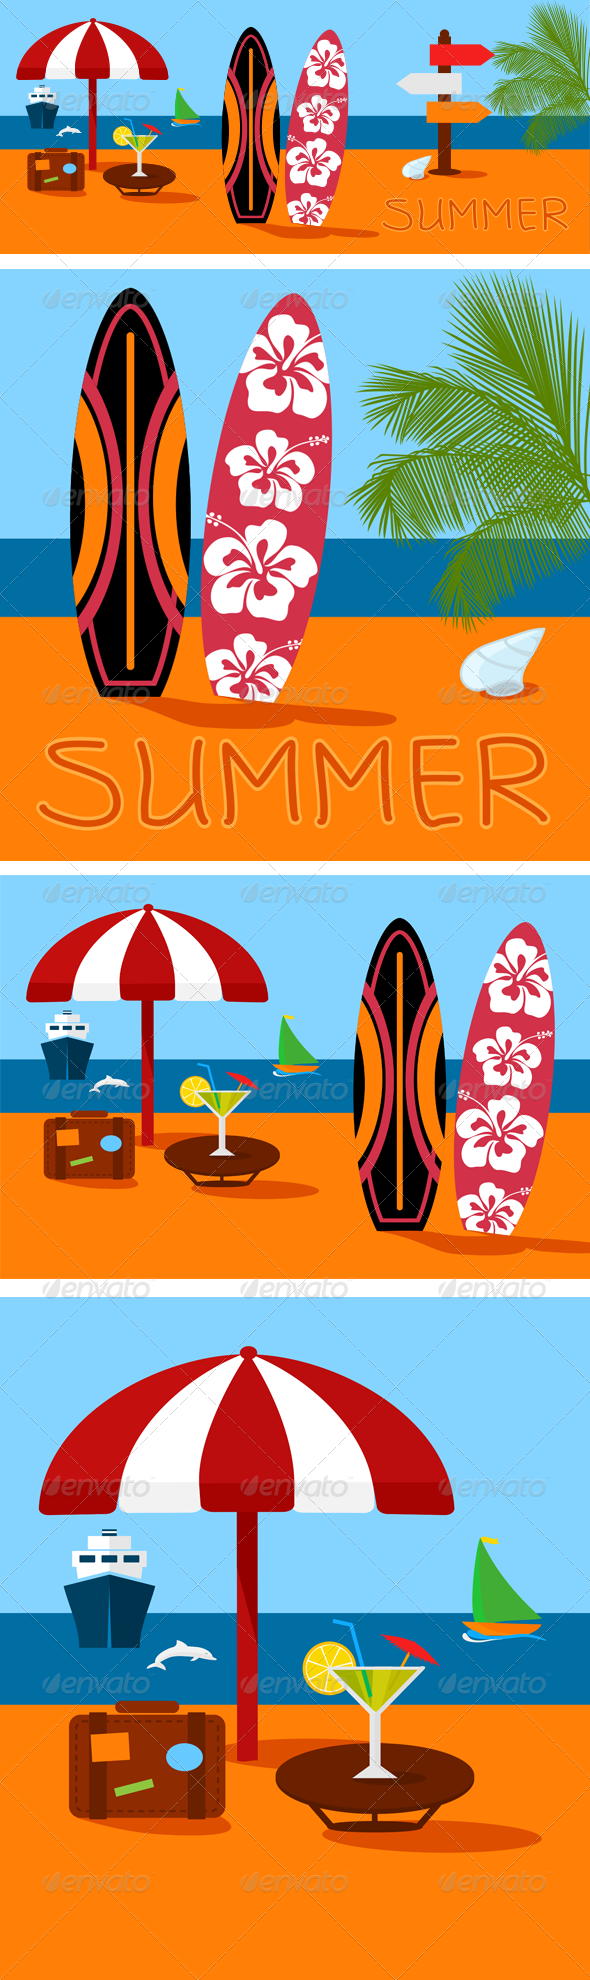 GraphicRiver Summer Beach Vector Illustration 7922803